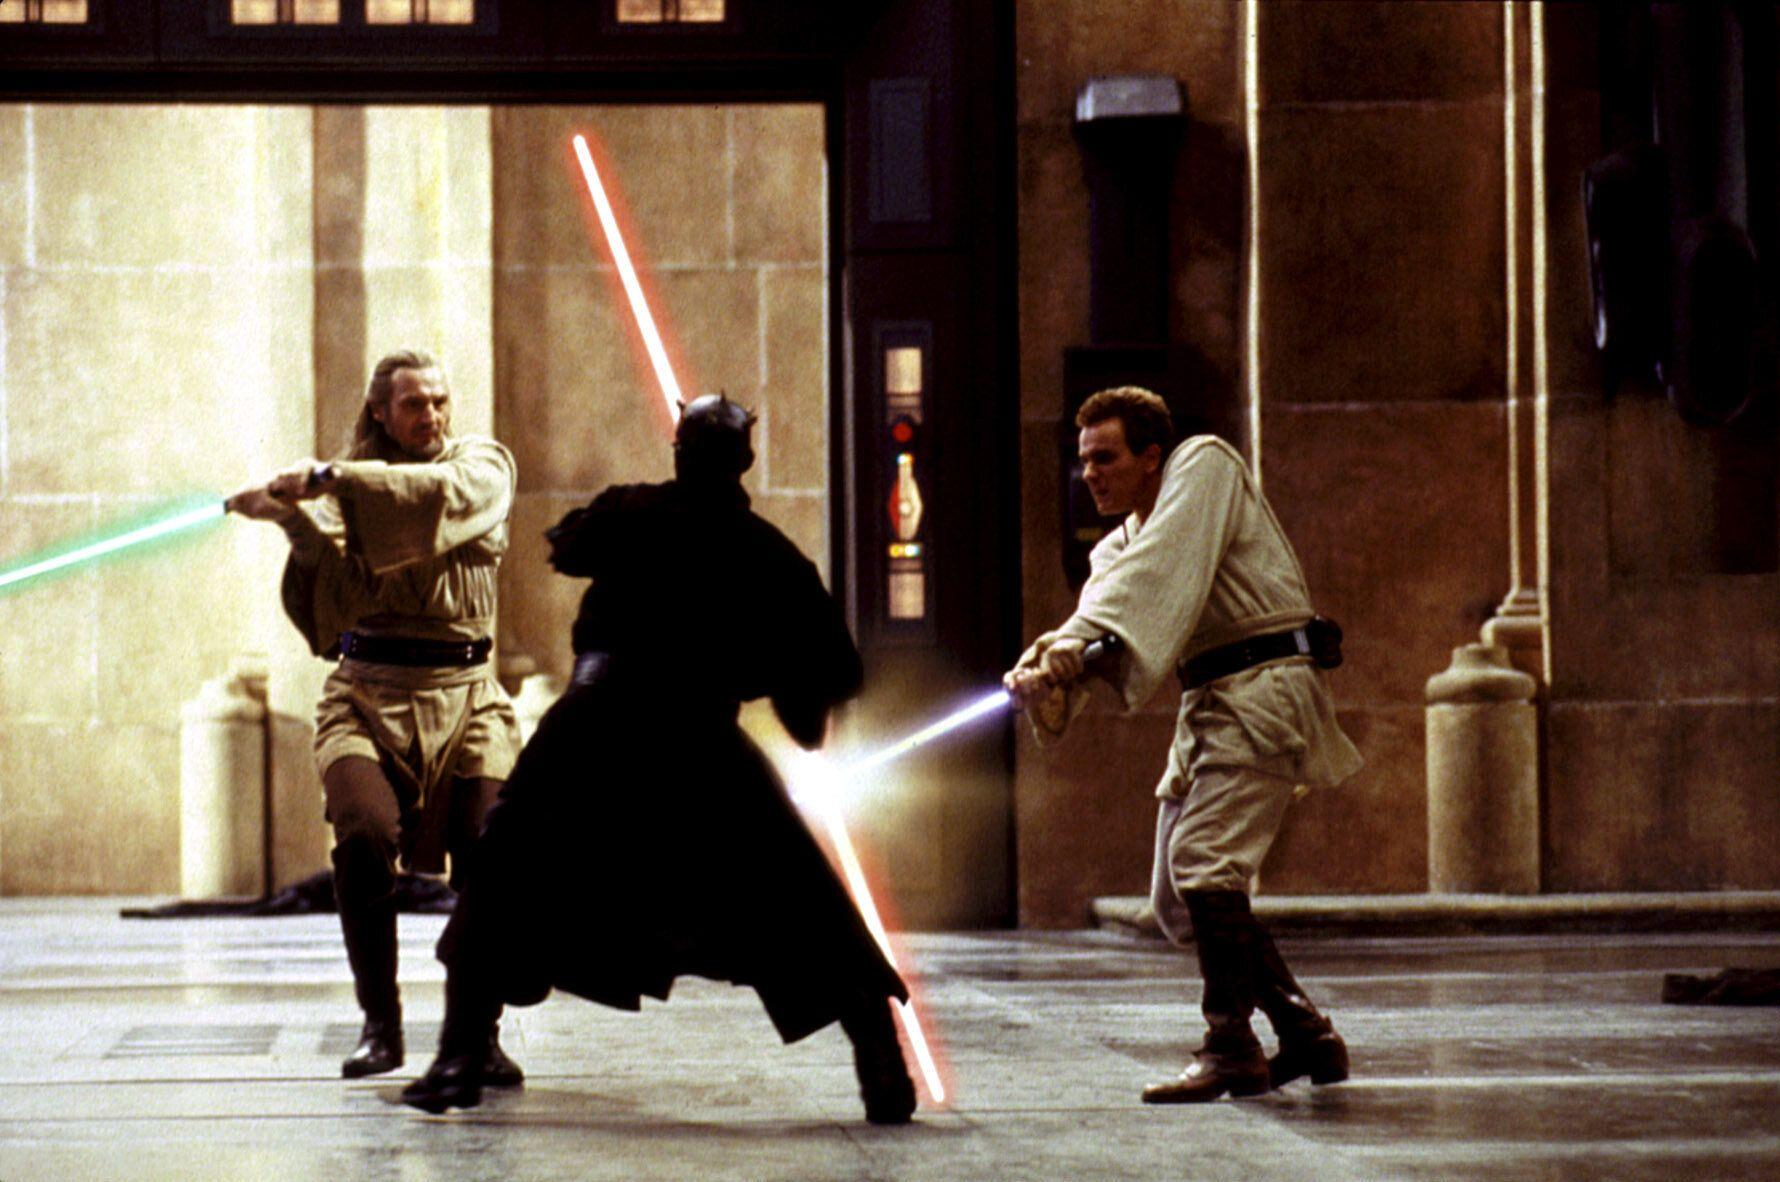 Darth Maul battles Jedi knights Qui-Gon and Obi-Wan in 'The Phantom Menace' (Photo: Lucasfilm Ltd./courtesy Everett / Everett Collection)